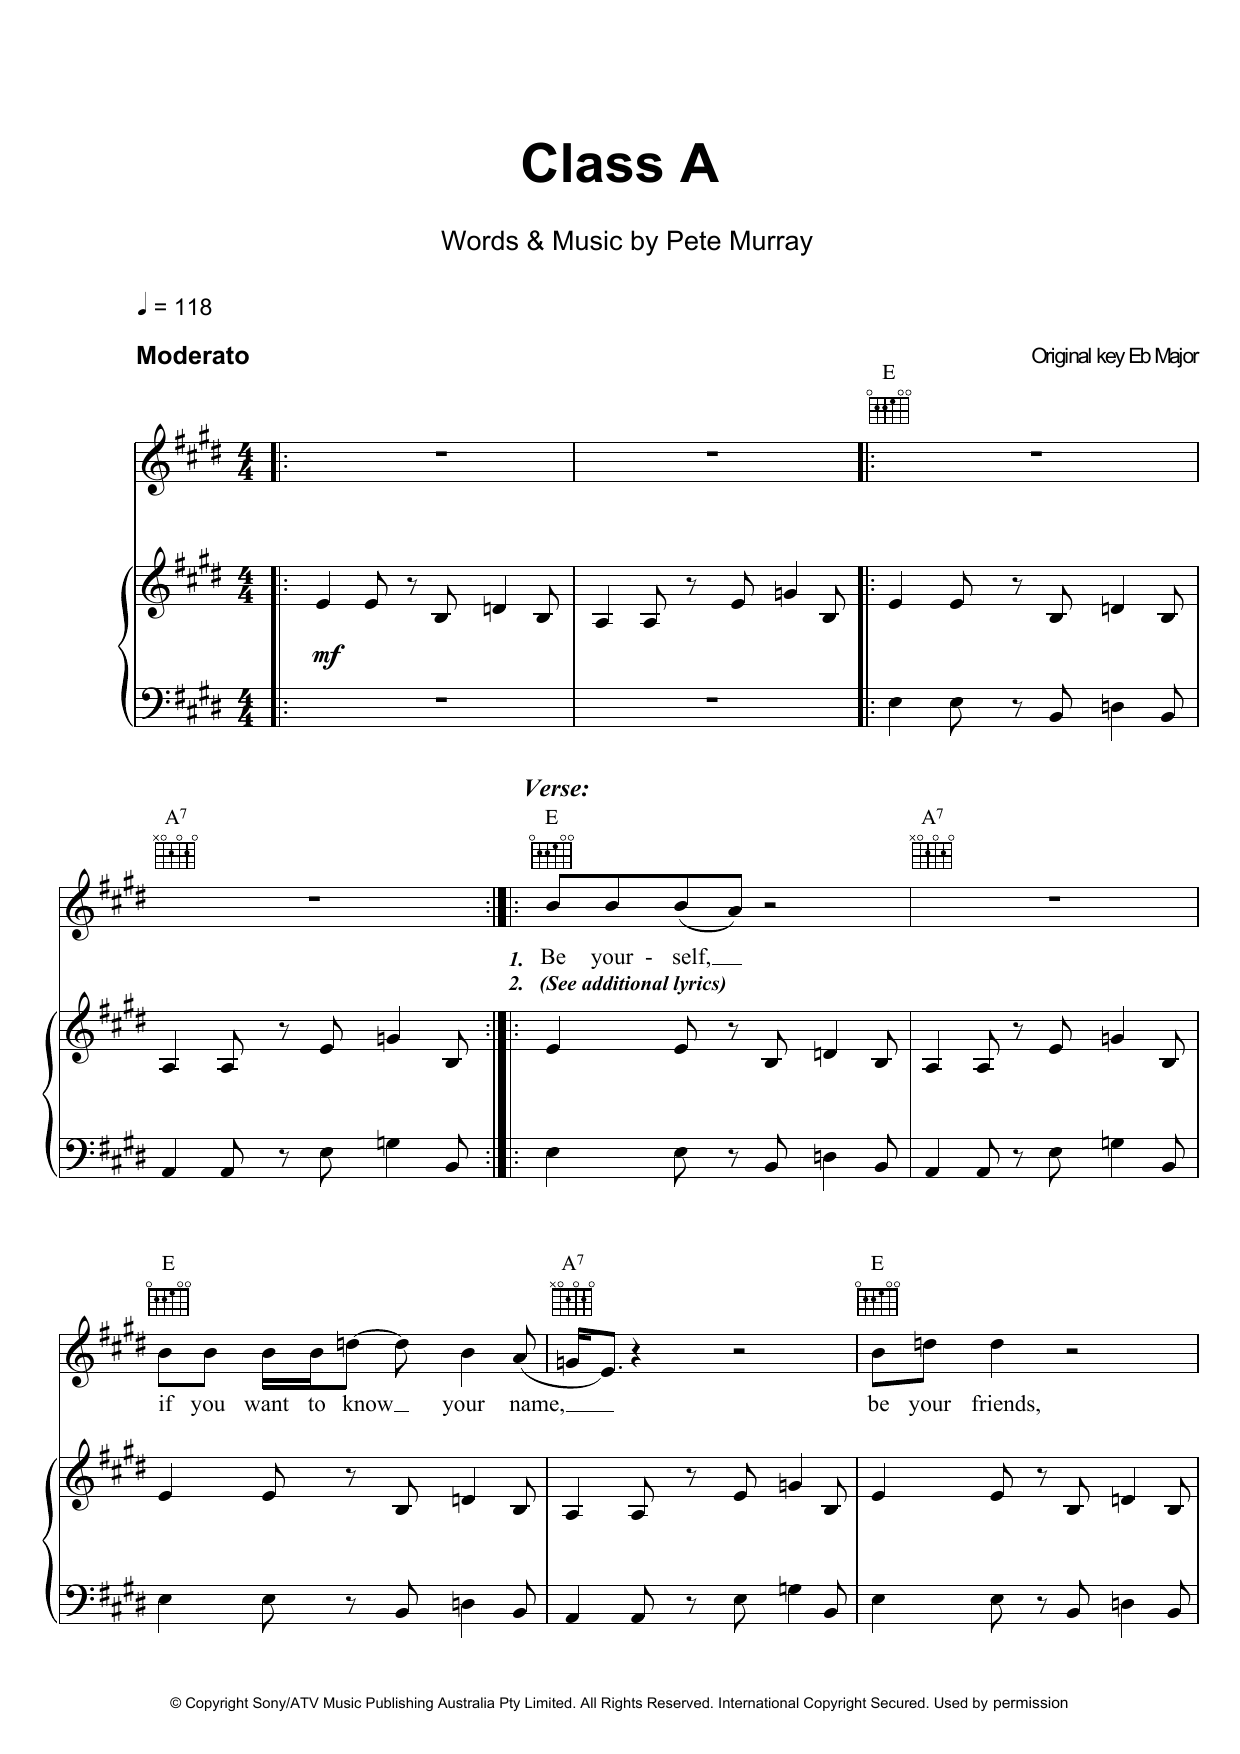 Pete Murray Class A sheet music preview music notes and score for Piano, Vocal & Guitar including 5 page(s)